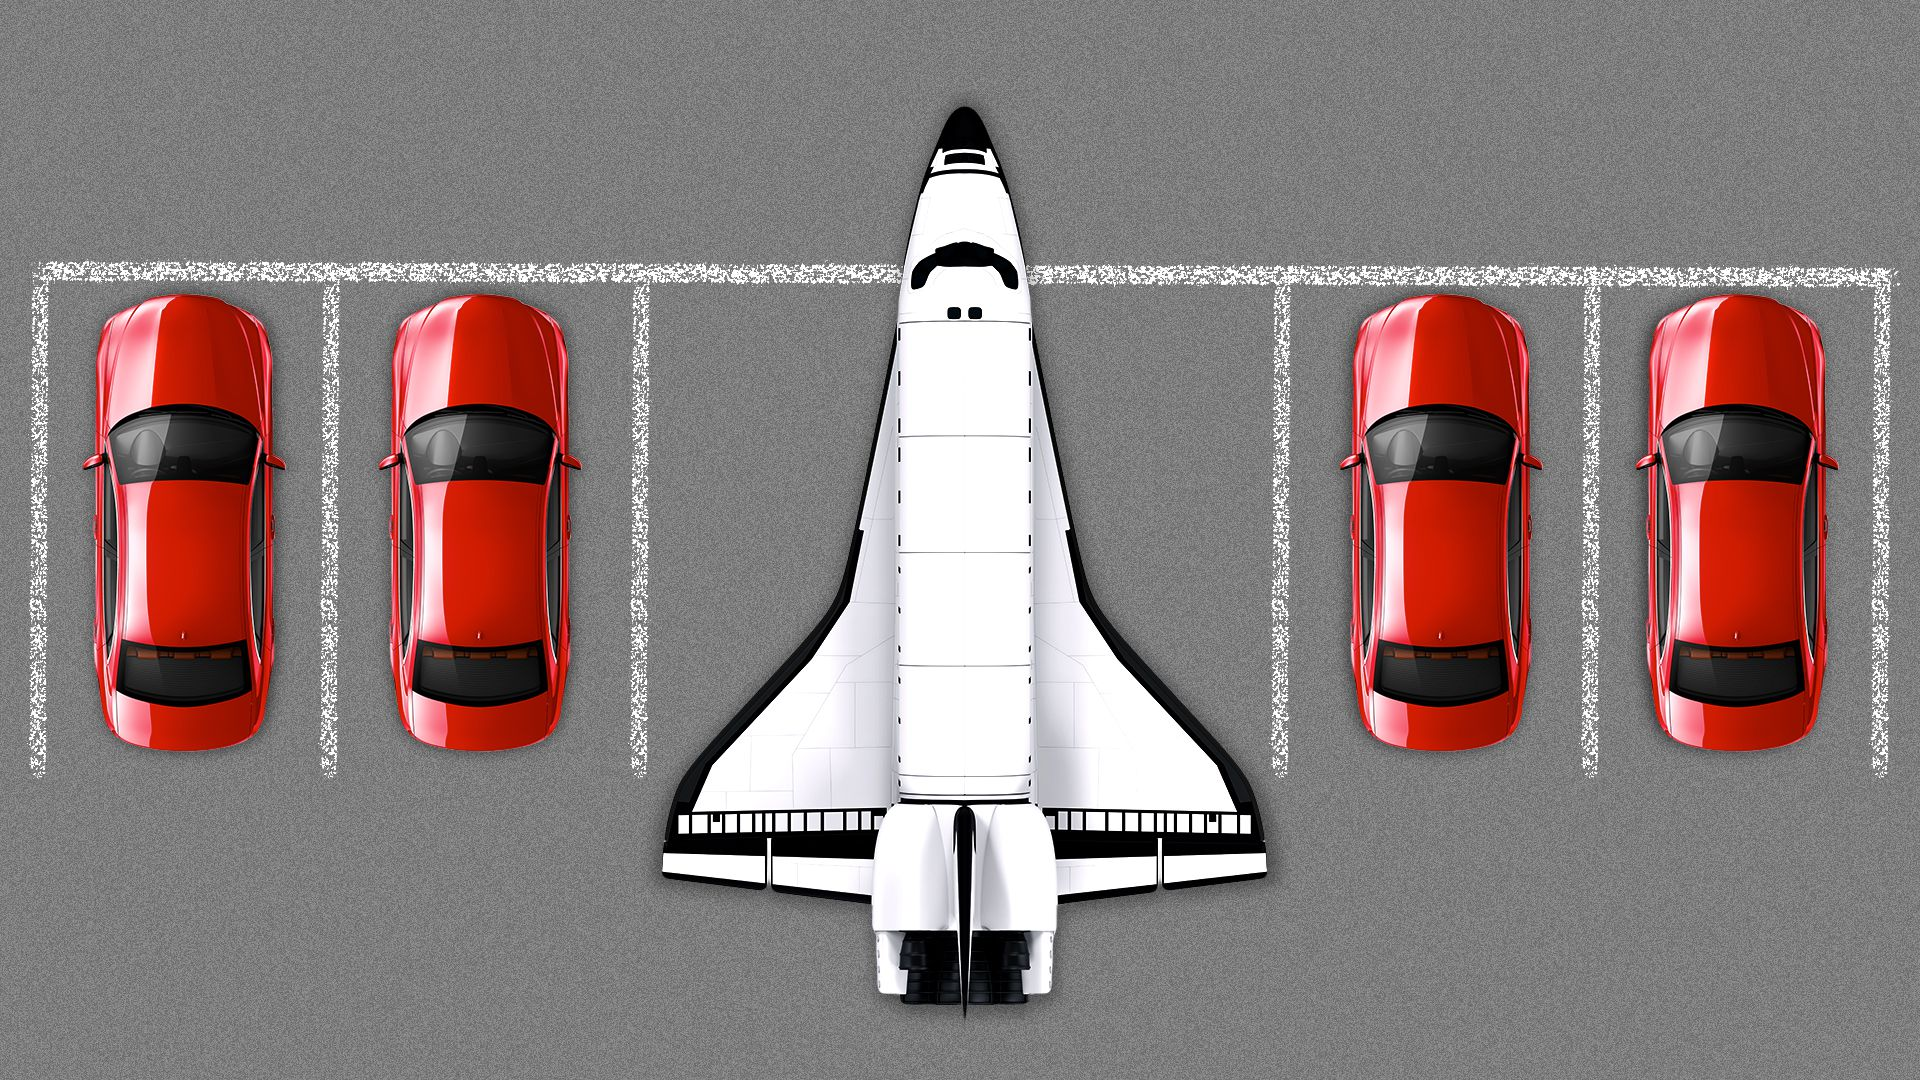 Illustration of a space shuttle in a parking lot with other cars.